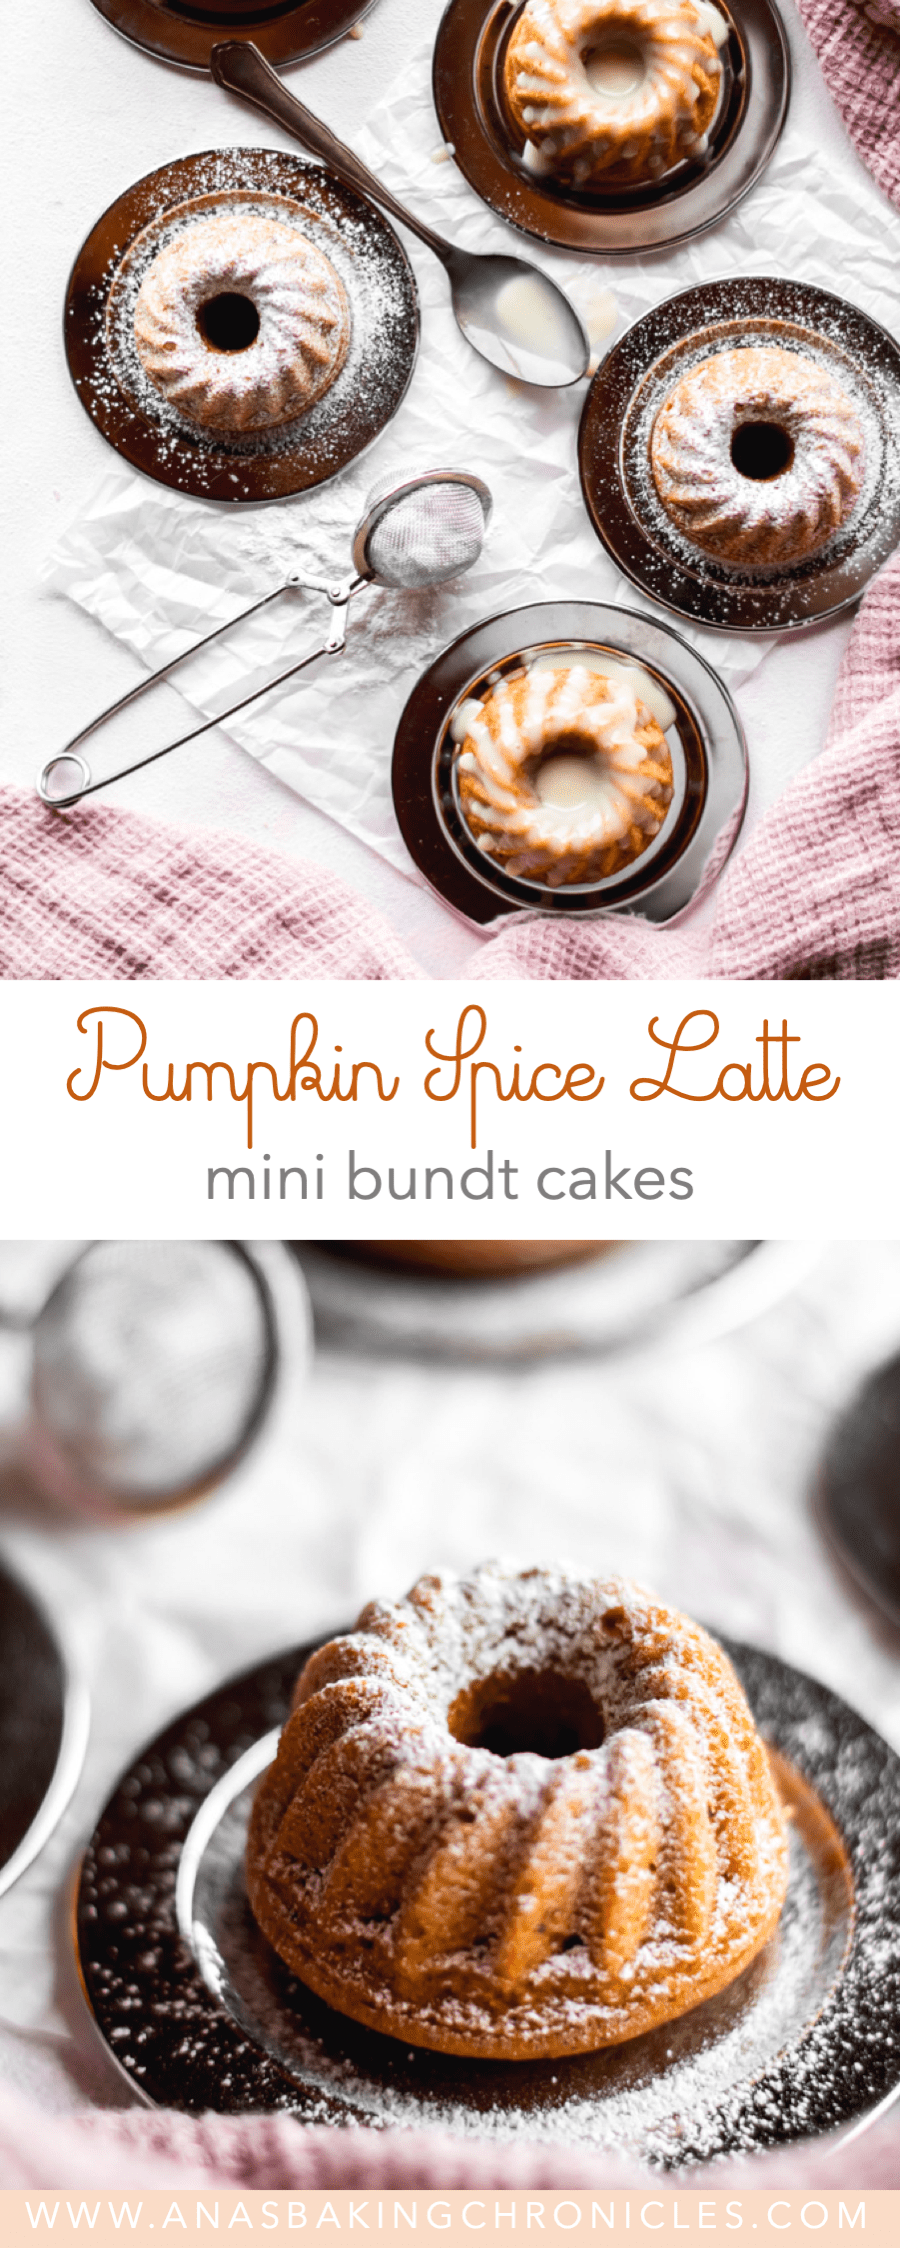 Soft and moist Pumpkin Spice mini cakes, made with homemade butternut squash puree and drizzled with silky Coffee White Chocolate Ganache.⎪www.anasbakingchronicles.com